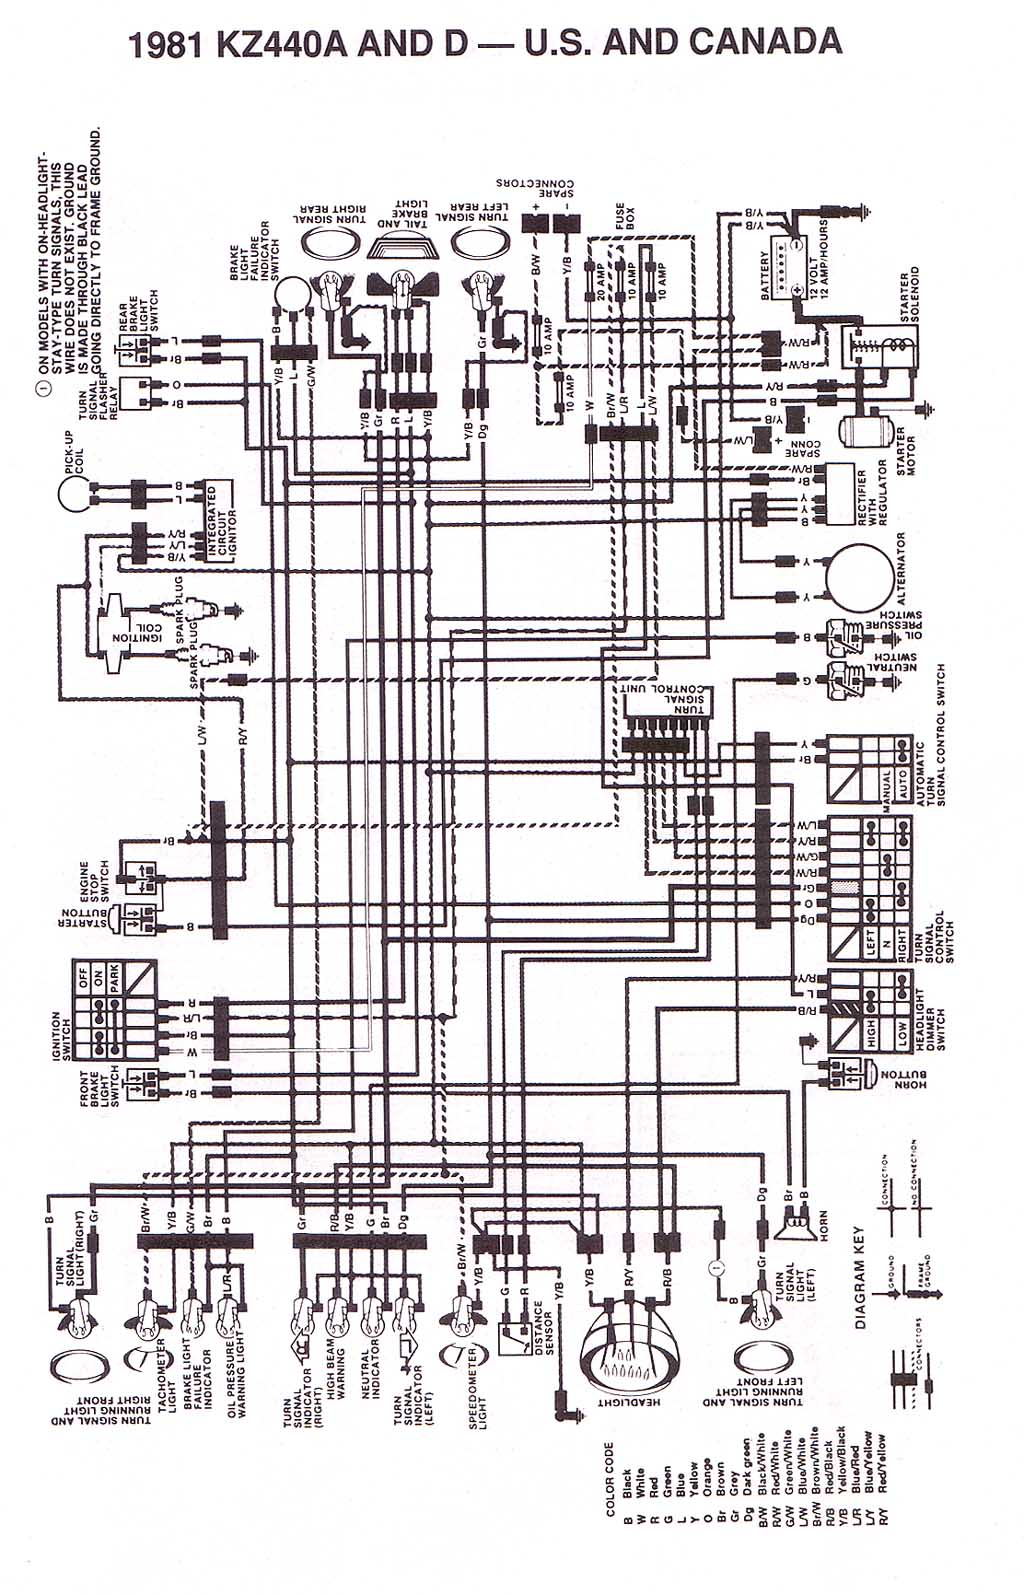 KZ440A and D wiring diagram (US) 81 kawasaki kz440 what is this darn wire kz440 wiring diagram at creativeand.co